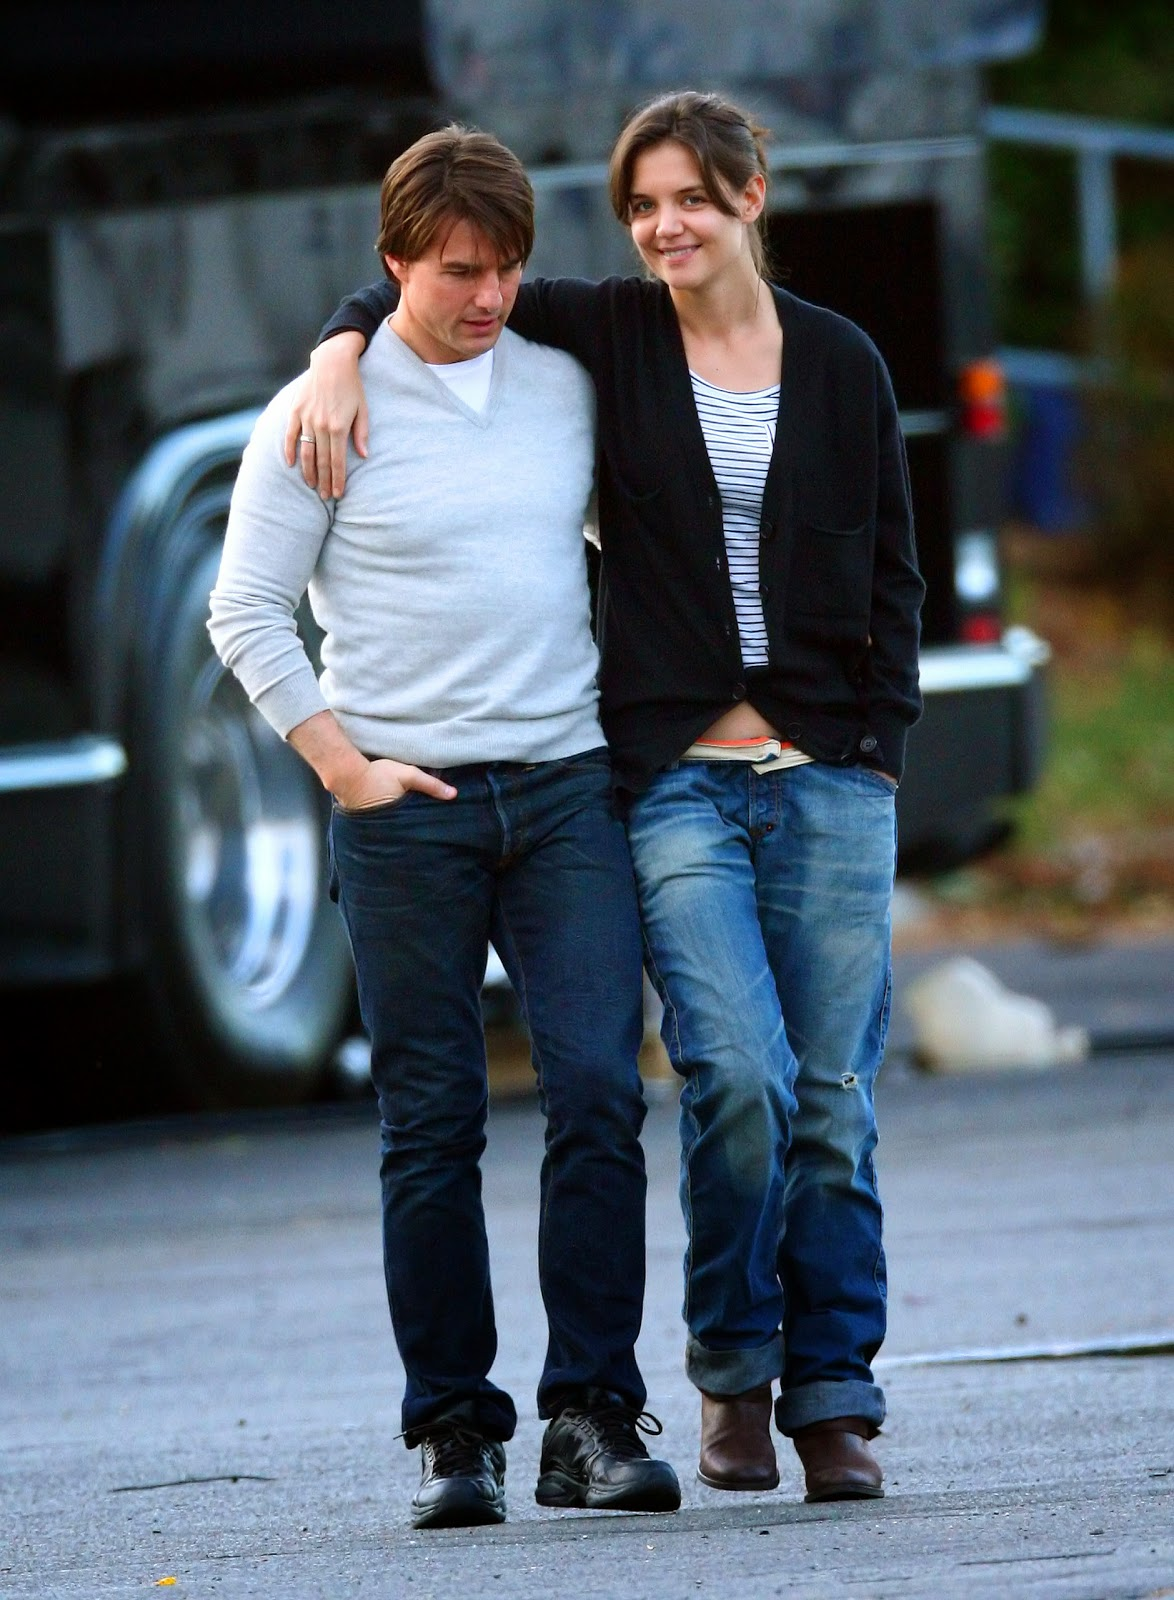 http://2.bp.blogspot.com/-FcJoOsSWYiE/T9RxiZ4WcPI/AAAAAAAACb0/cIPH0lgUaRA/s1600/Katie_Holmes_and_Tom_Cruise_share_a_romantic_walk_in_Boston_-_November_1_2009_3.jpg